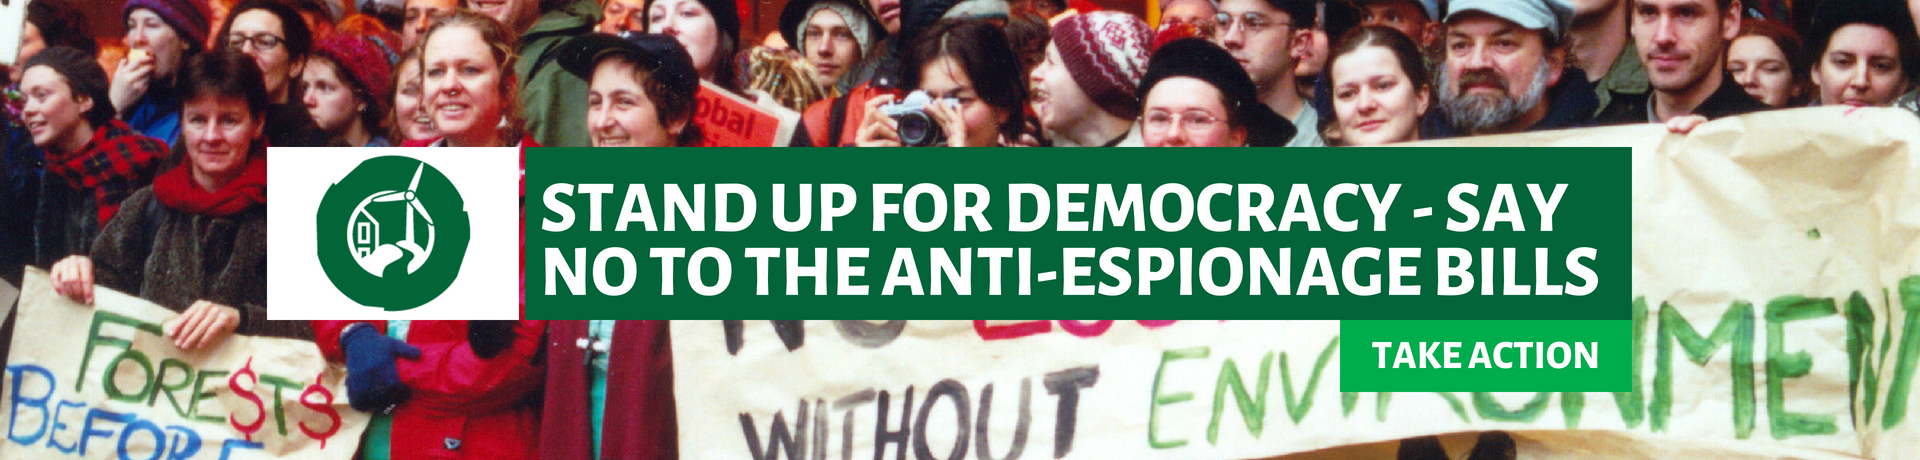 Stand up for democracy - say no to the anti-espionage bills